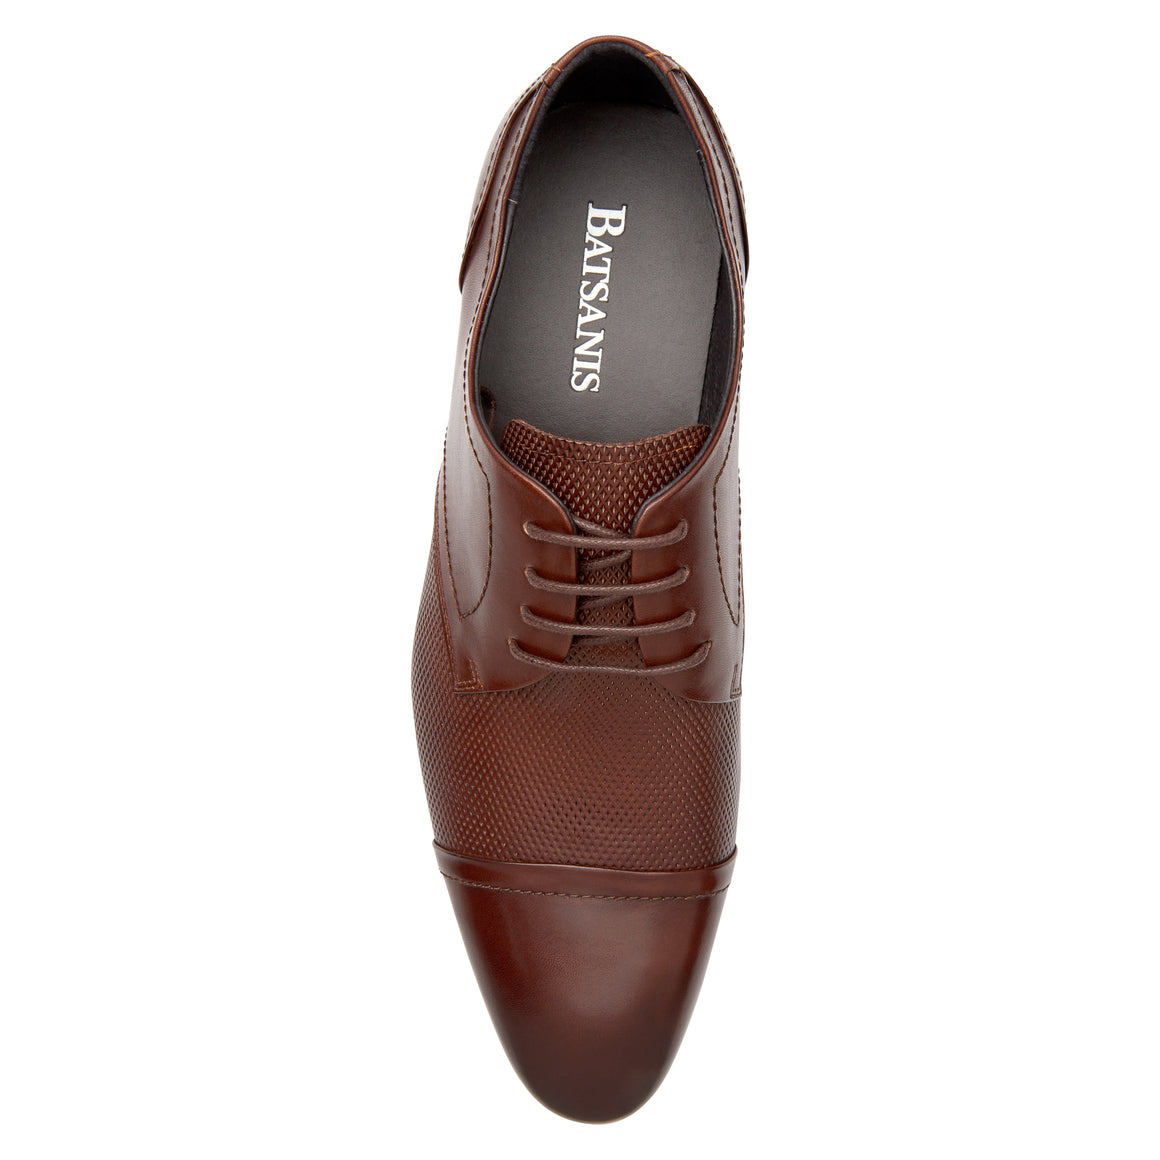 Olsen Brown Derby Shoes